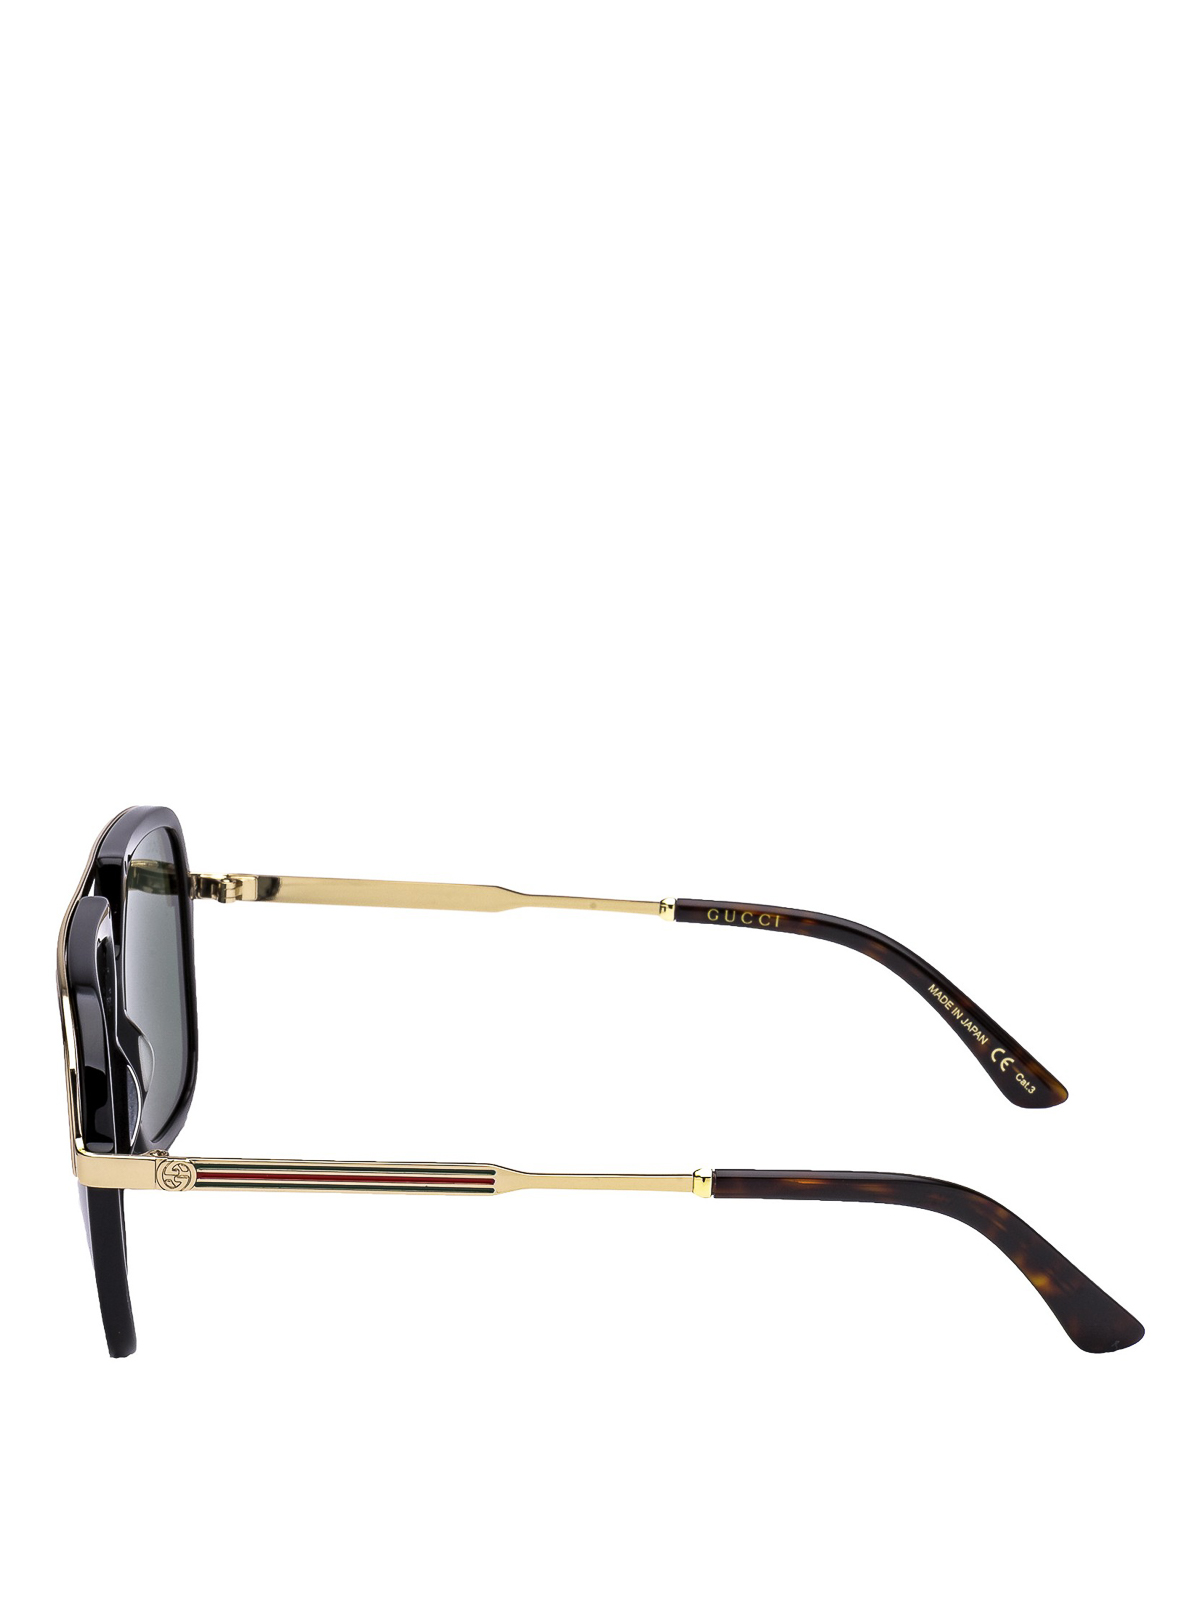 aab29660f96d5 GUCCI  sunglasses online - Web detailed black and gold sunglasses